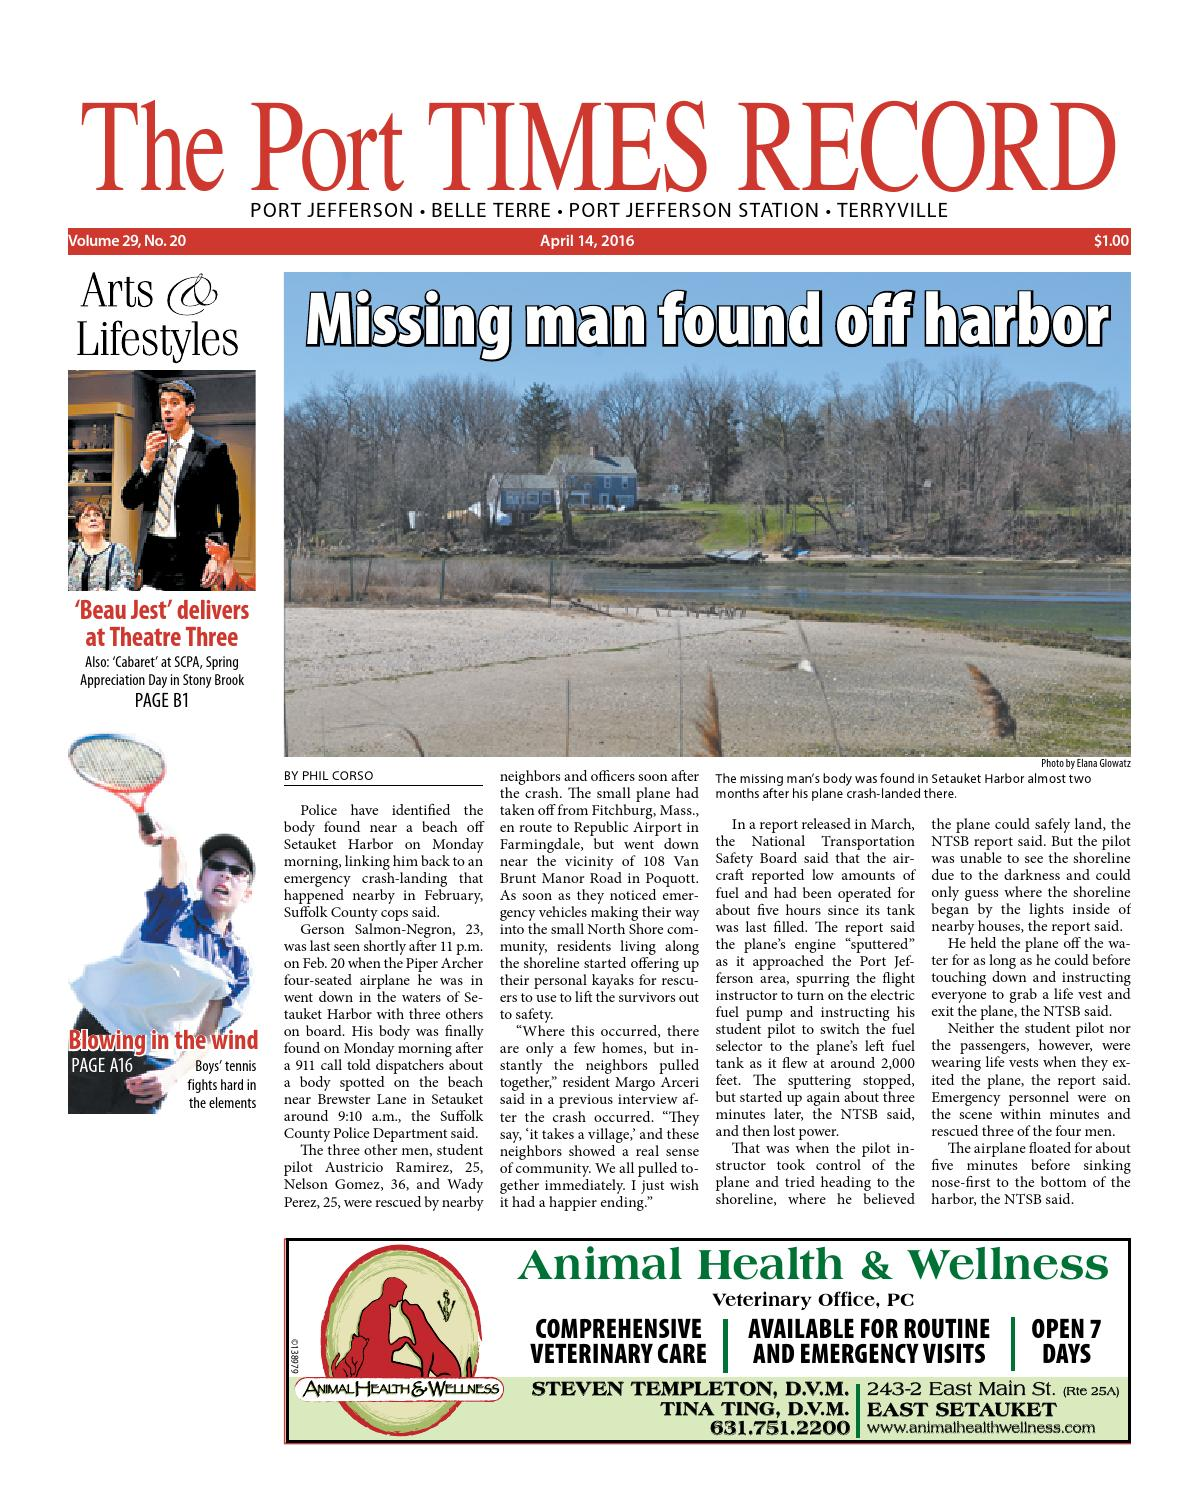 The Port Times Record - April 14, 2016 by TBR News Media - issuu